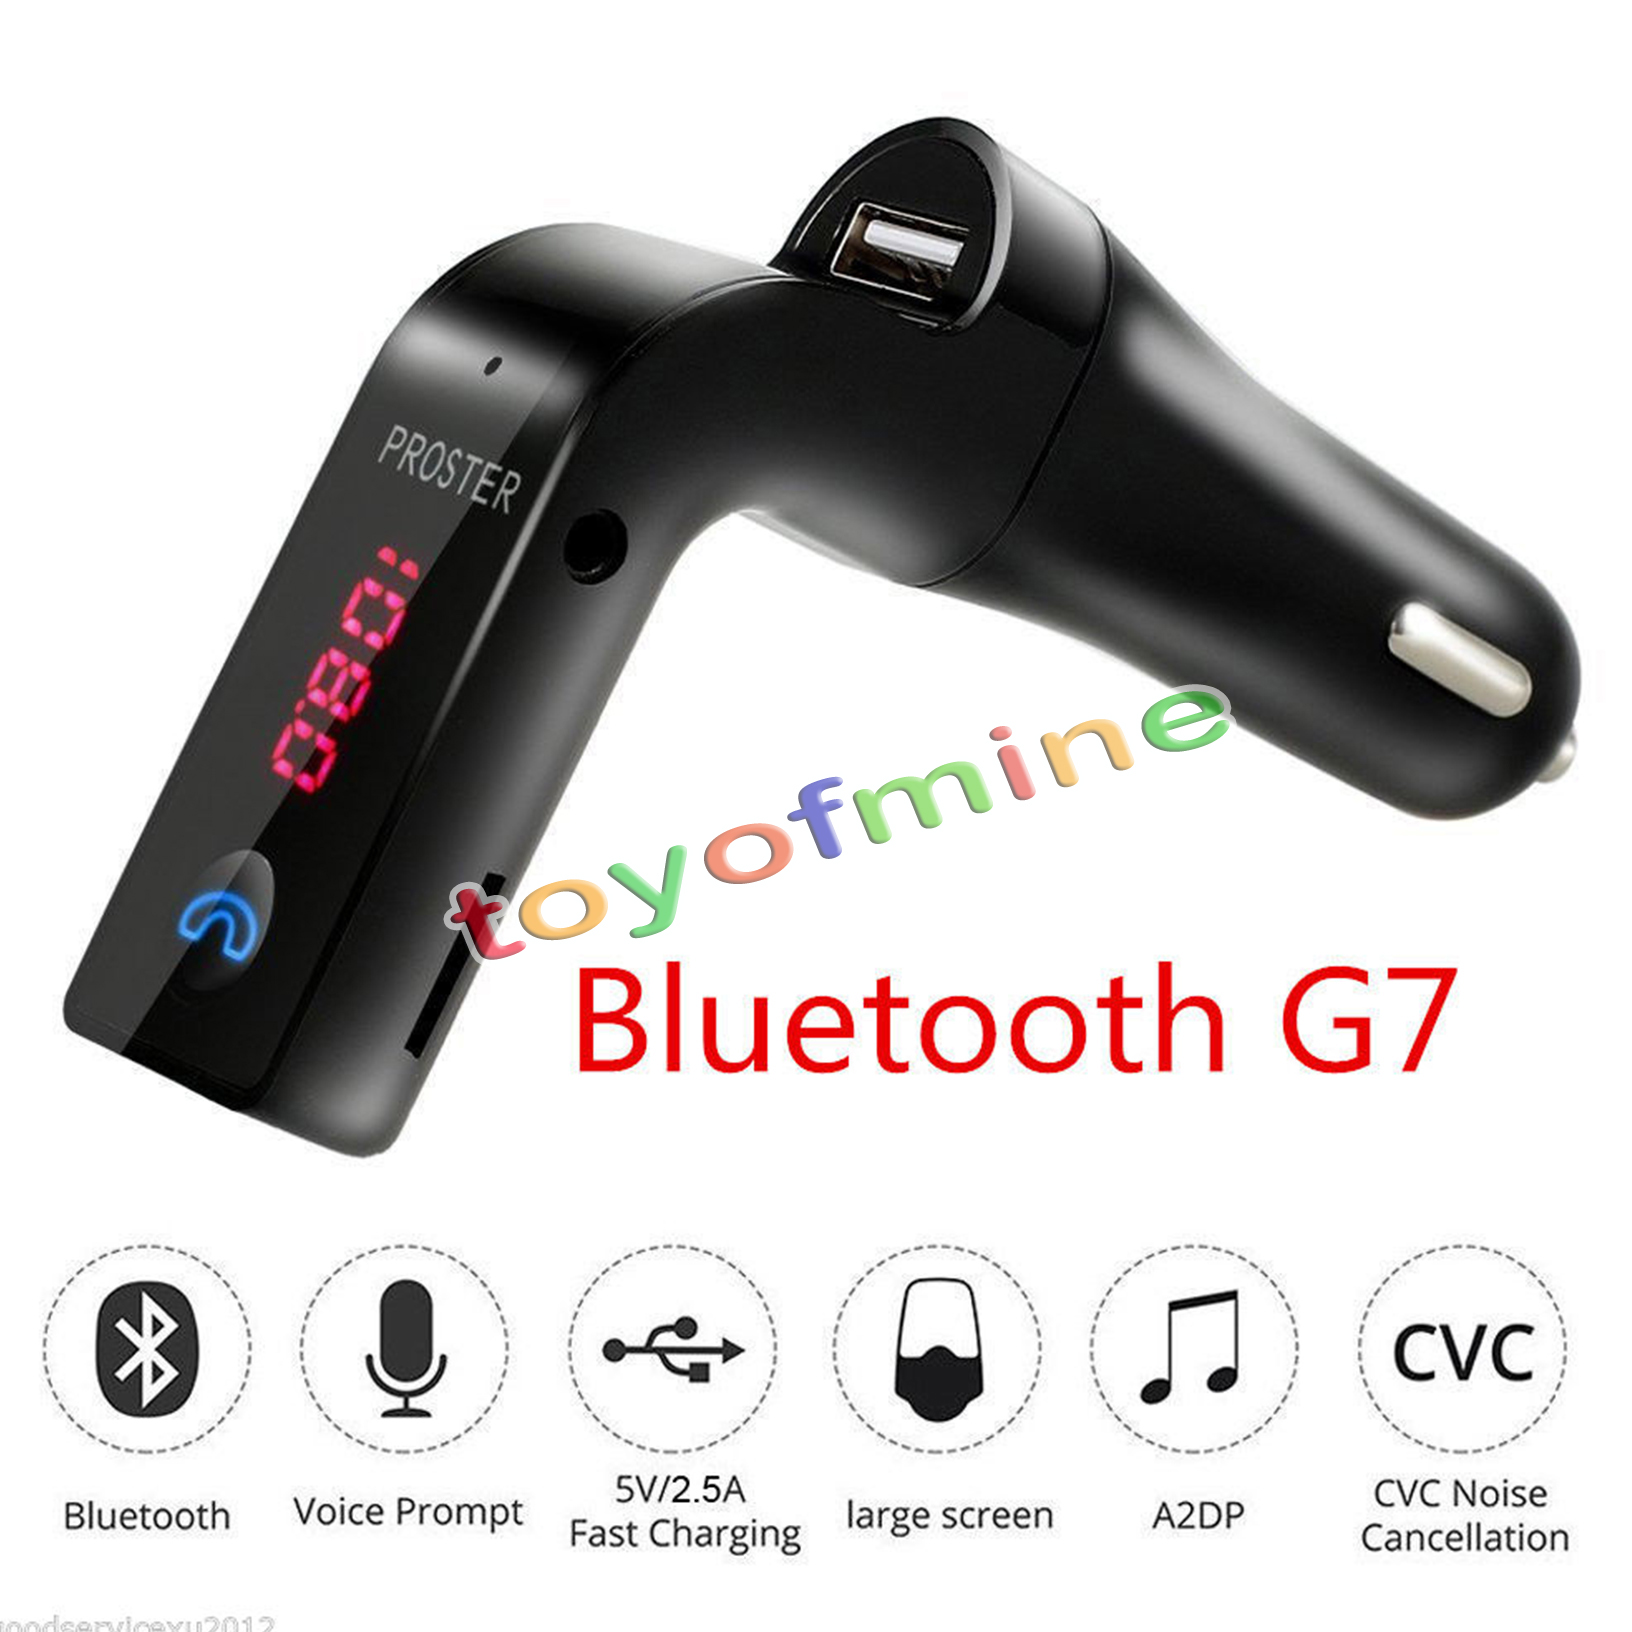 g7 bluetooth car handsfree fm transmitter radio mp3 player. Black Bedroom Furniture Sets. Home Design Ideas